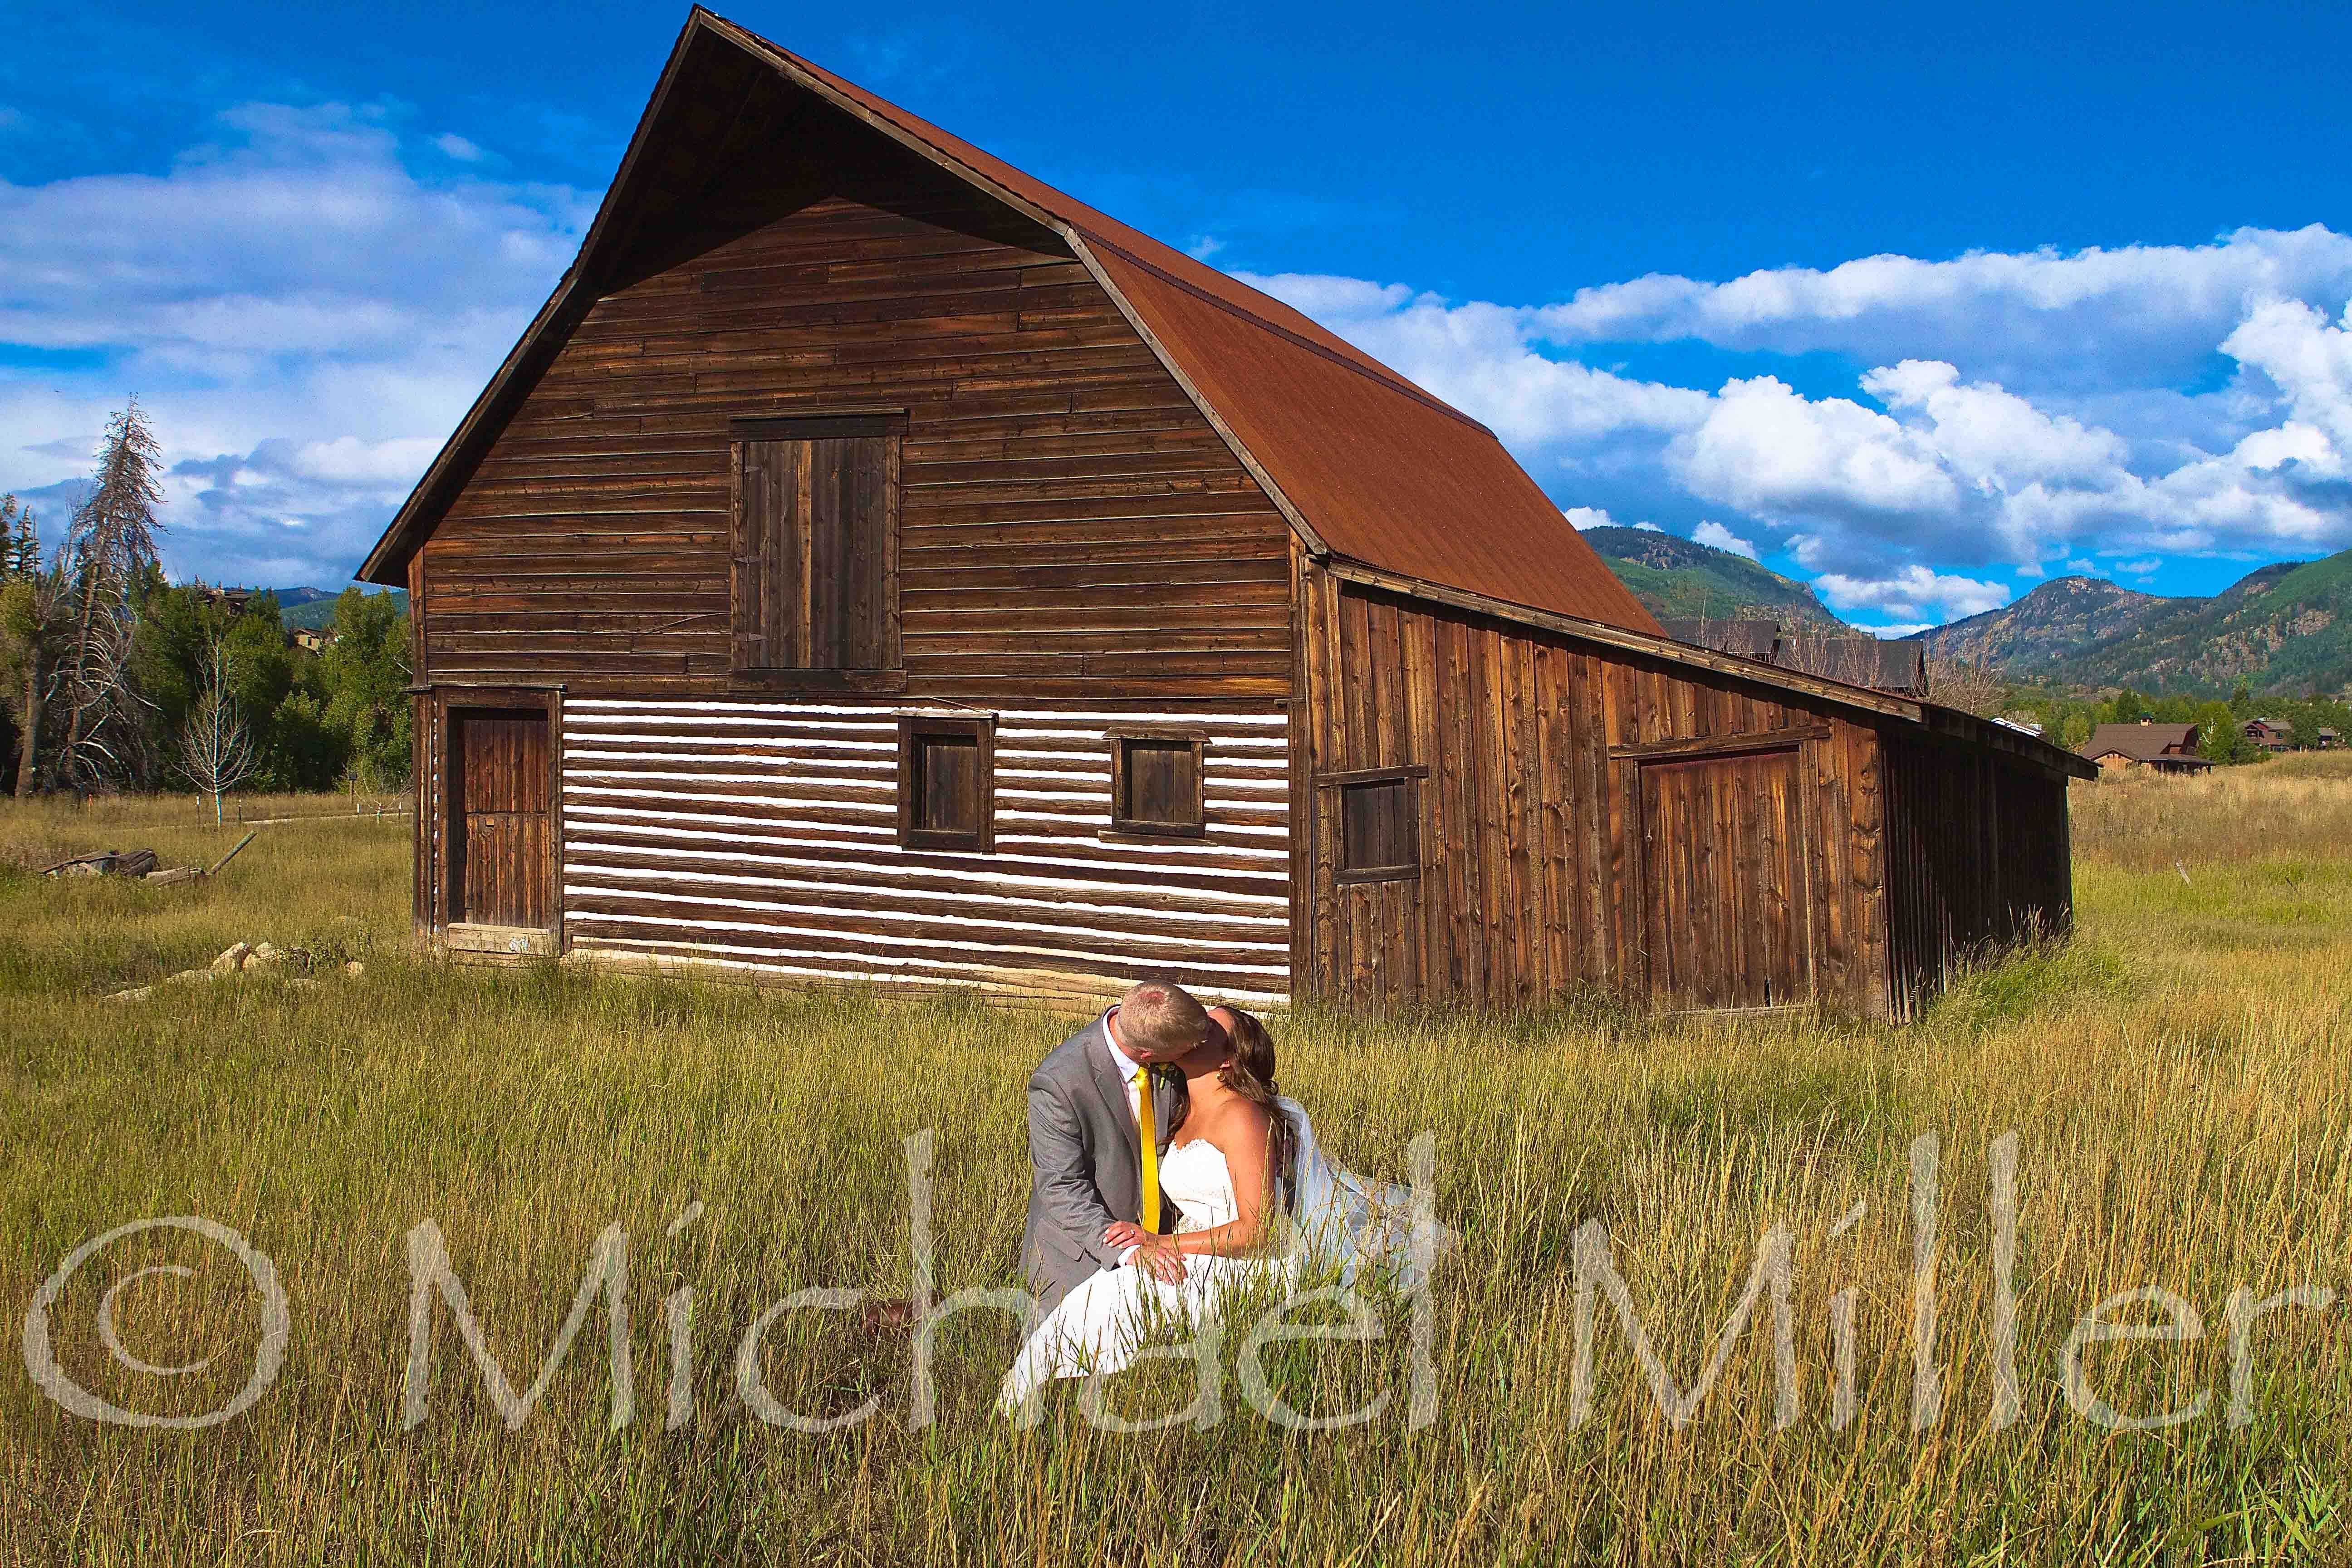 Enjoying a sweet kiss in front of the famous wooden barn ...